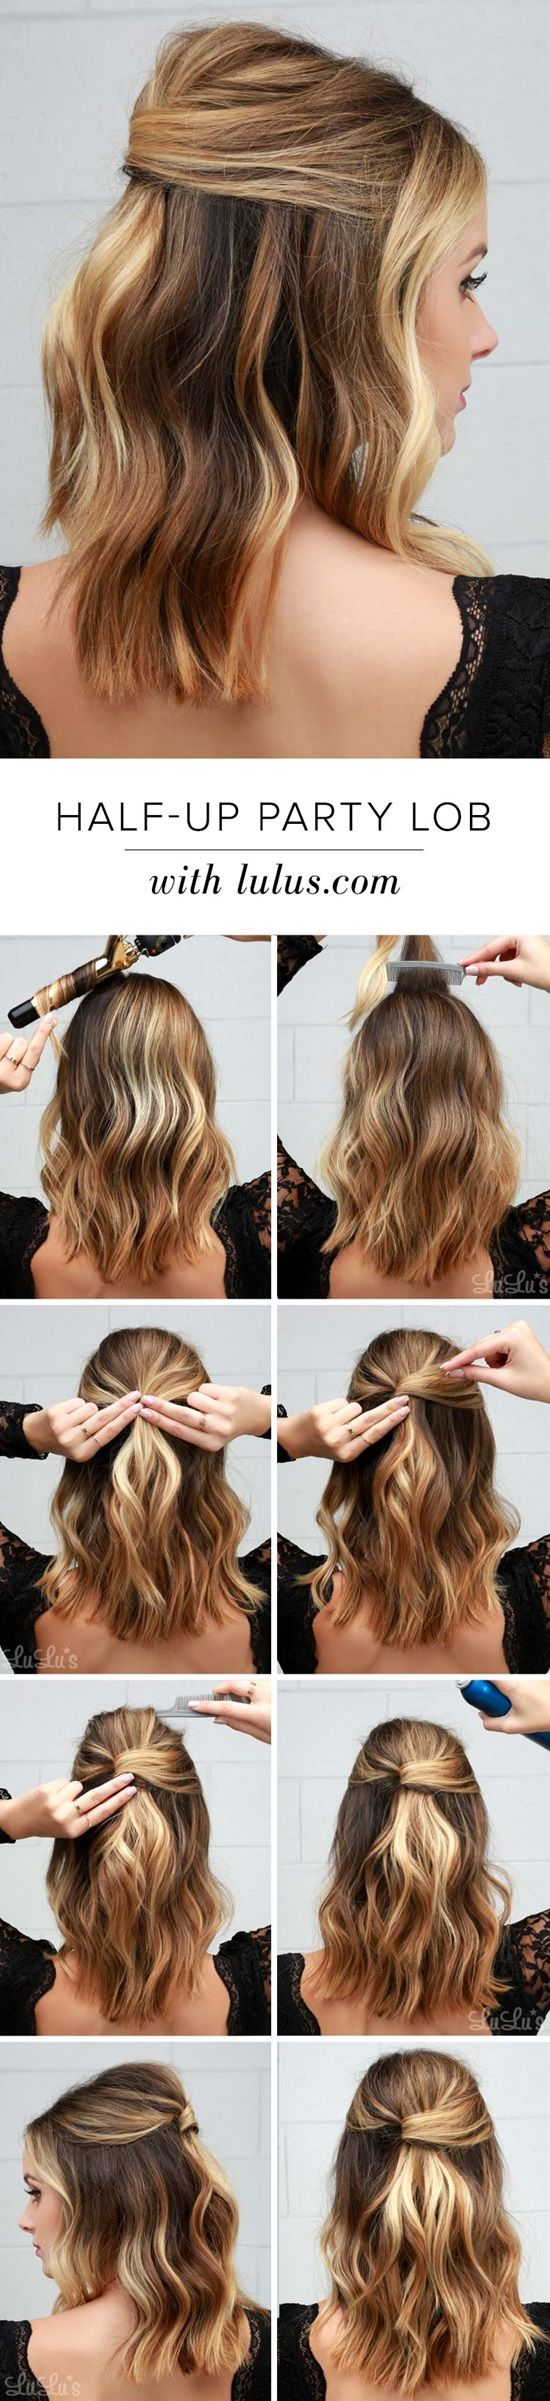 14 Bold Unique Hairstyle Tutorials You Can Do At Home Hair Styles Medium Hair Styles Long Hair Styles